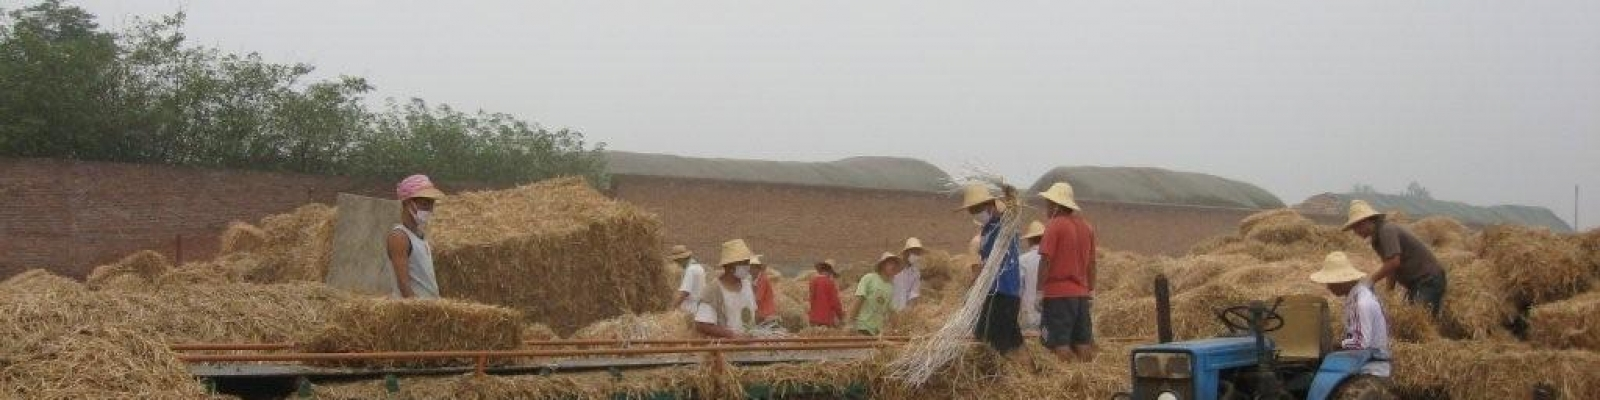 The production of fibreboards from straw